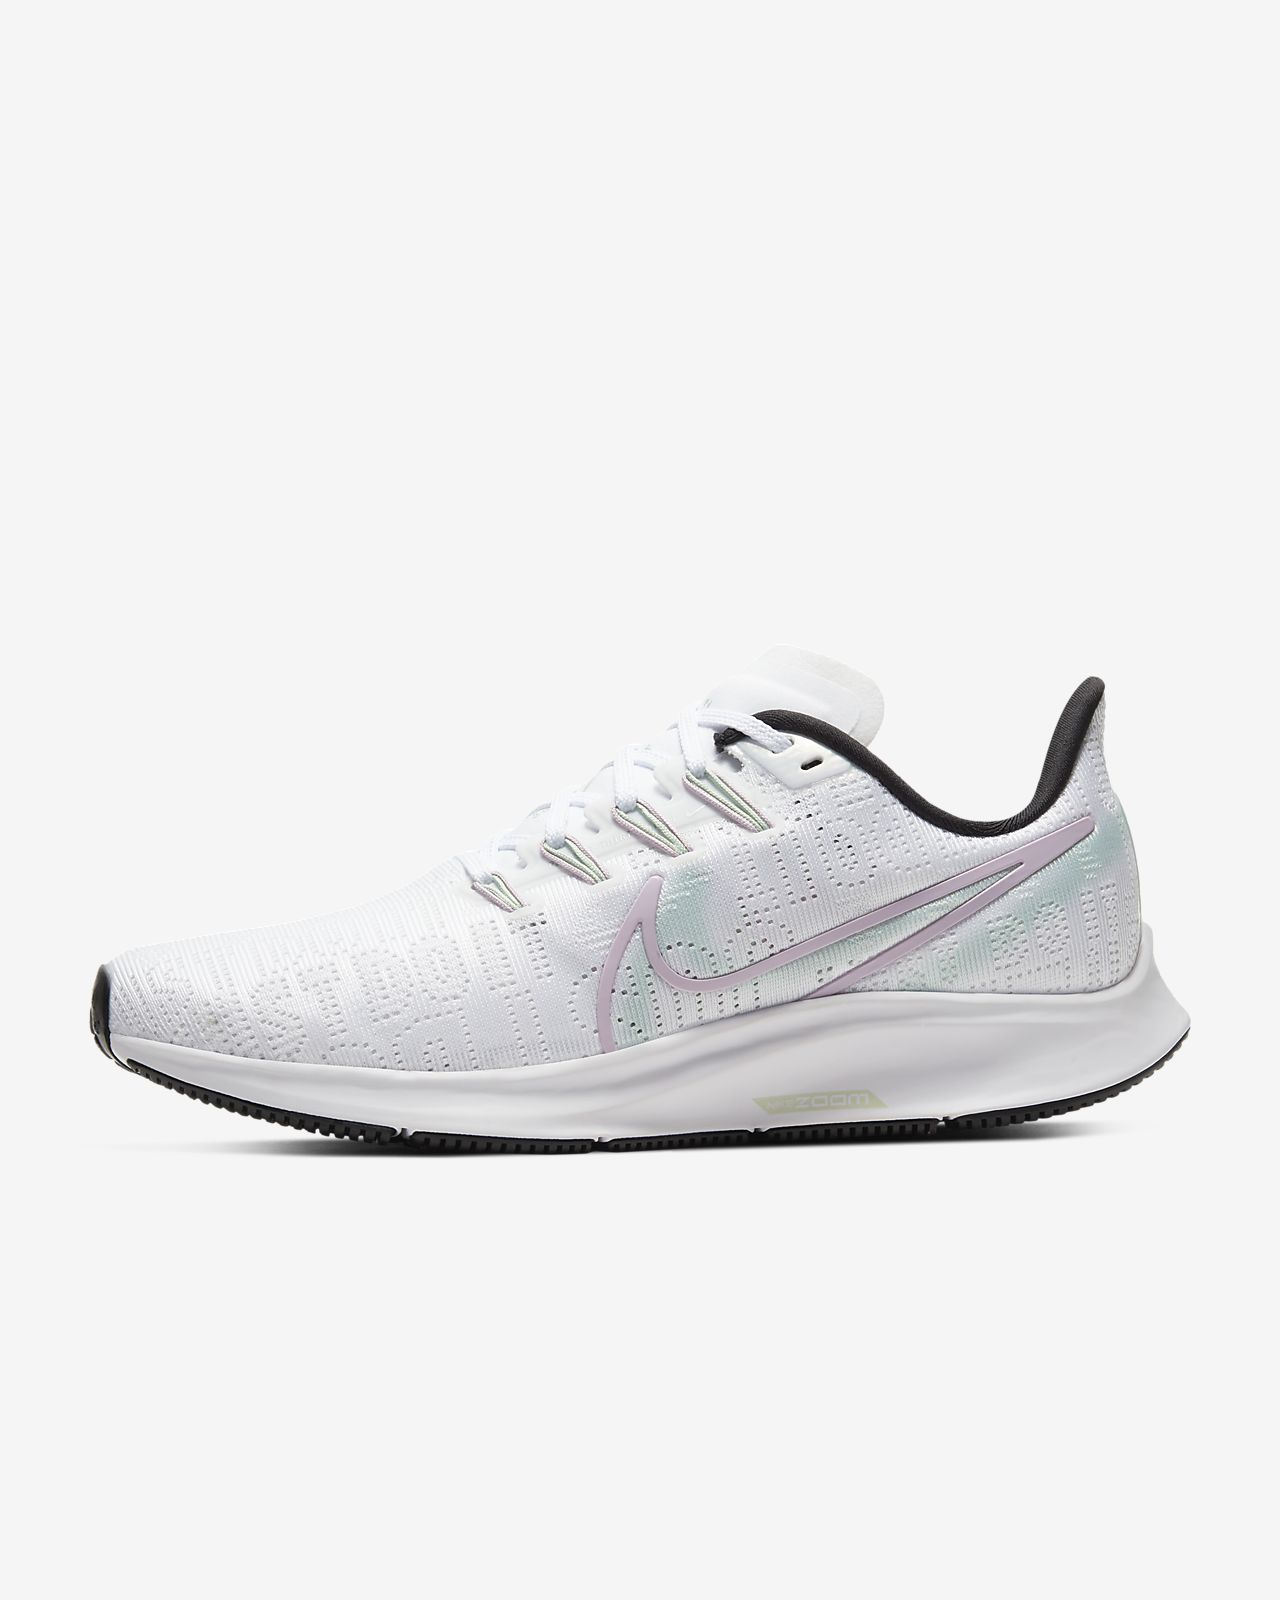 Nike Air Zoom Pegasus 36 PRM 女子跑步鞋